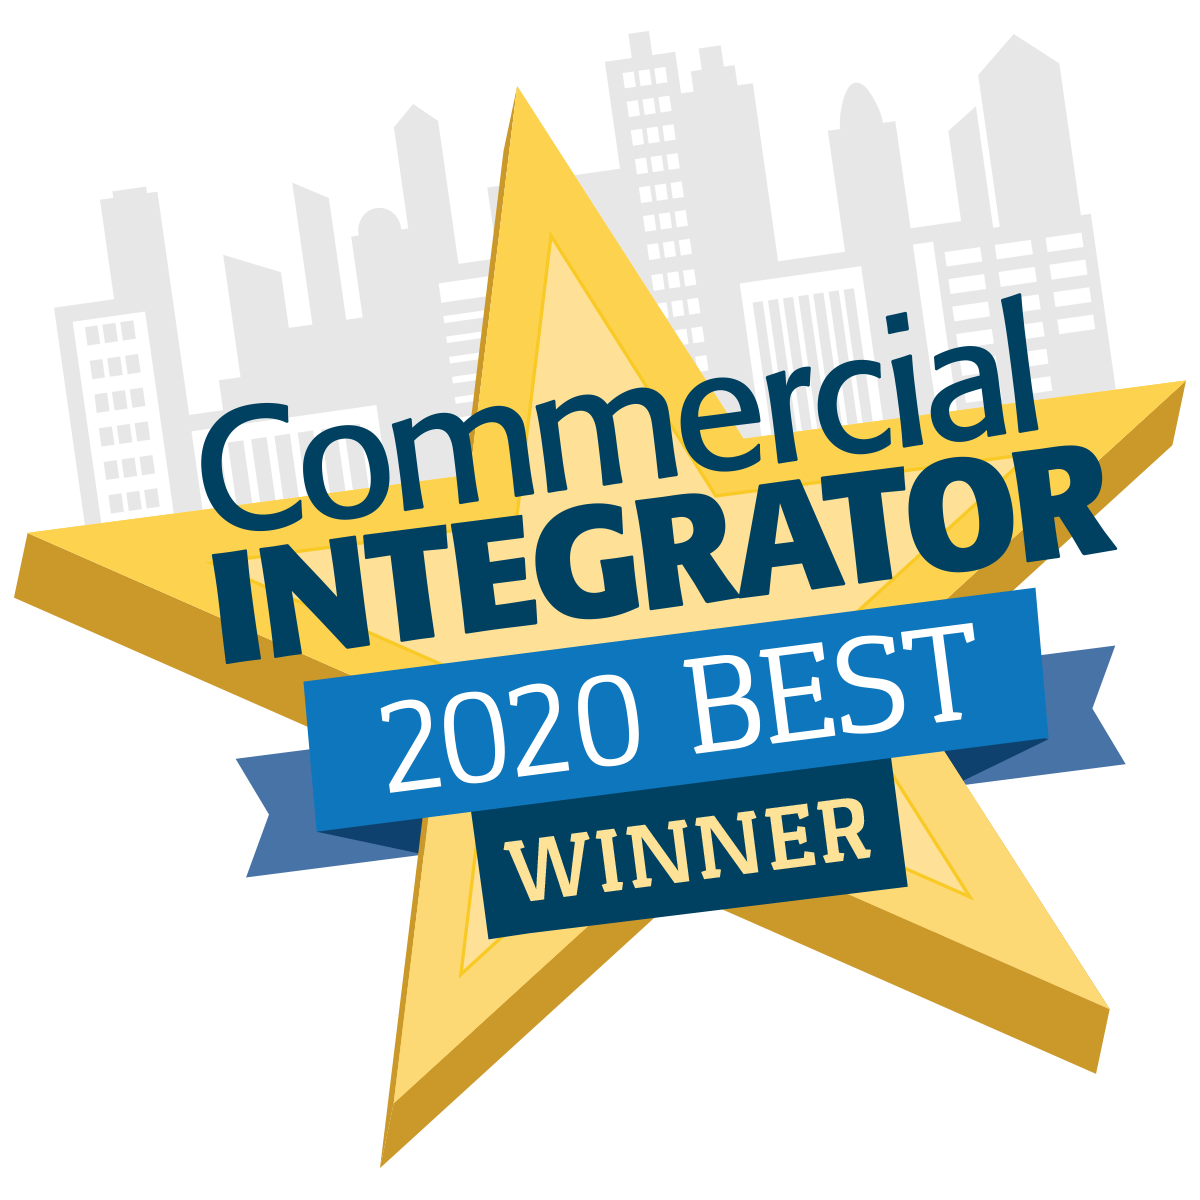 Commercial Integrator Best Awards